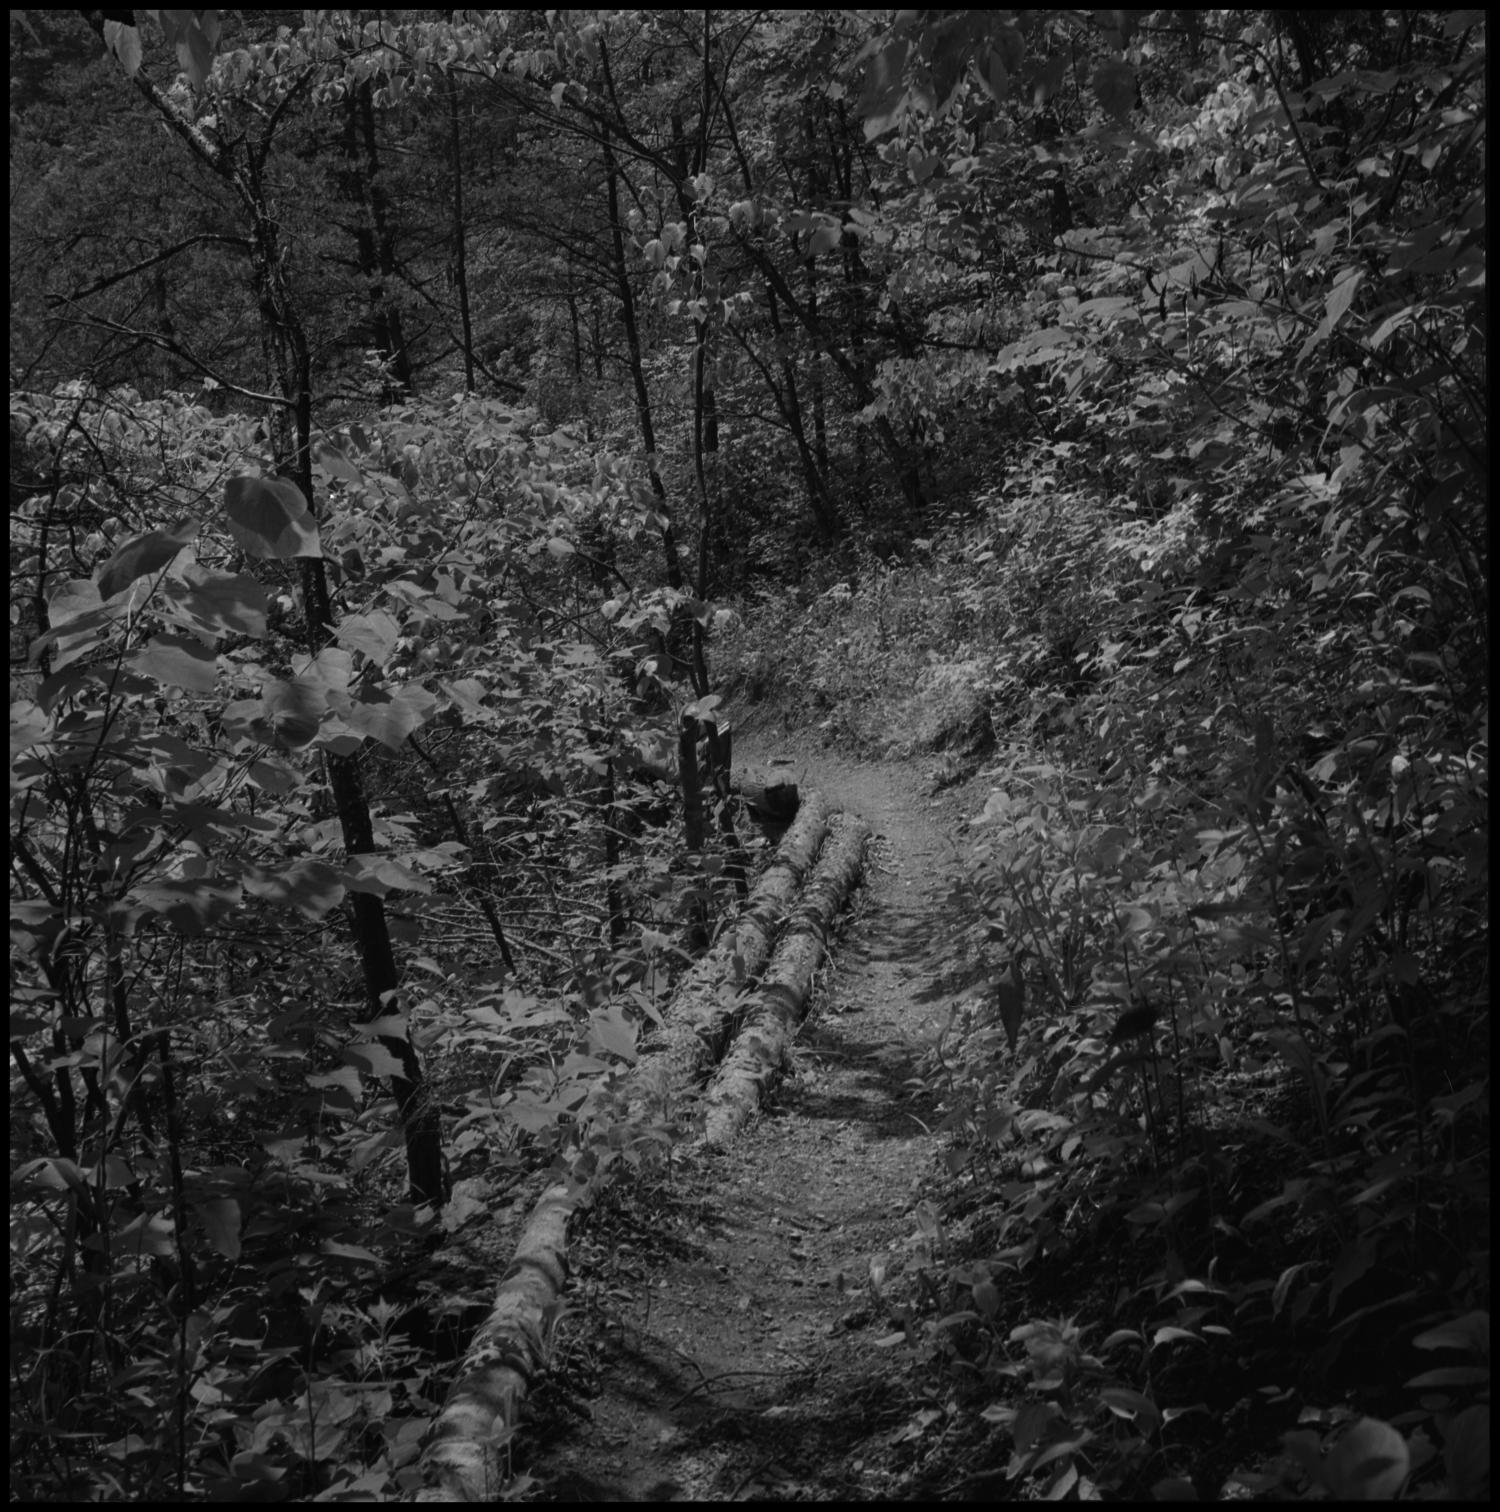 [Foot path], Photograph of a path on a hill through a wooded area. The path is lined with logs on one side.,